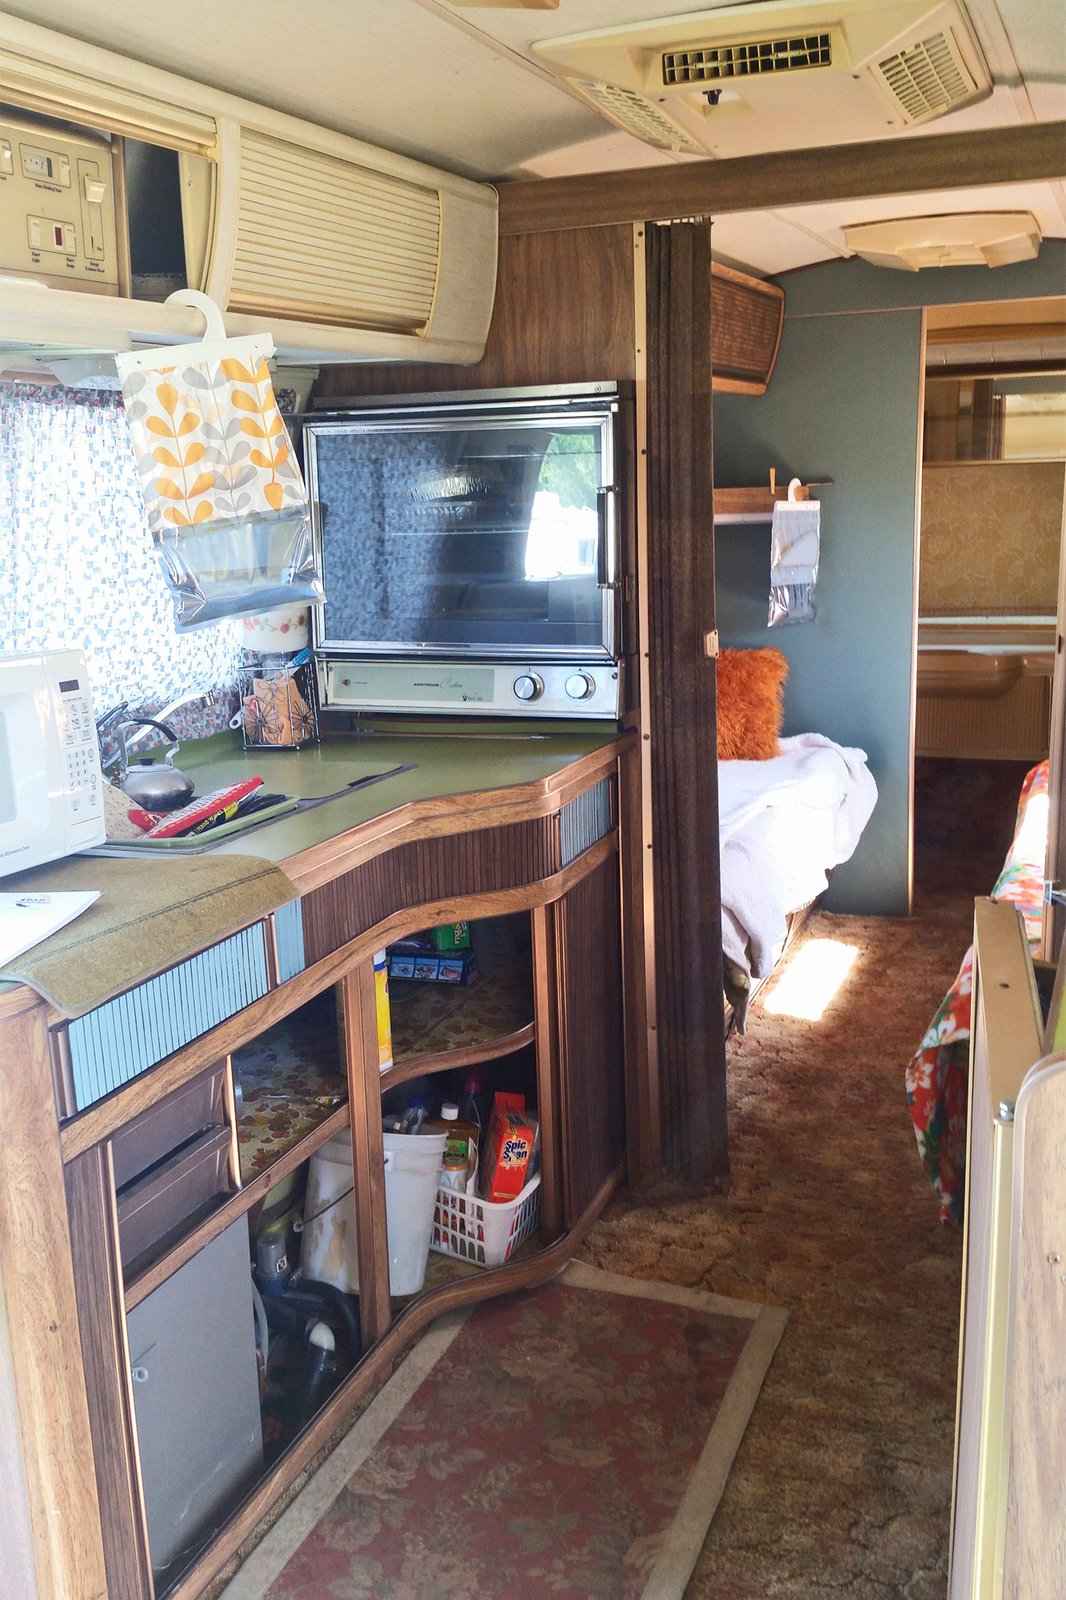 A peek inside the 40-year-old trailer before the 10-month renovation.